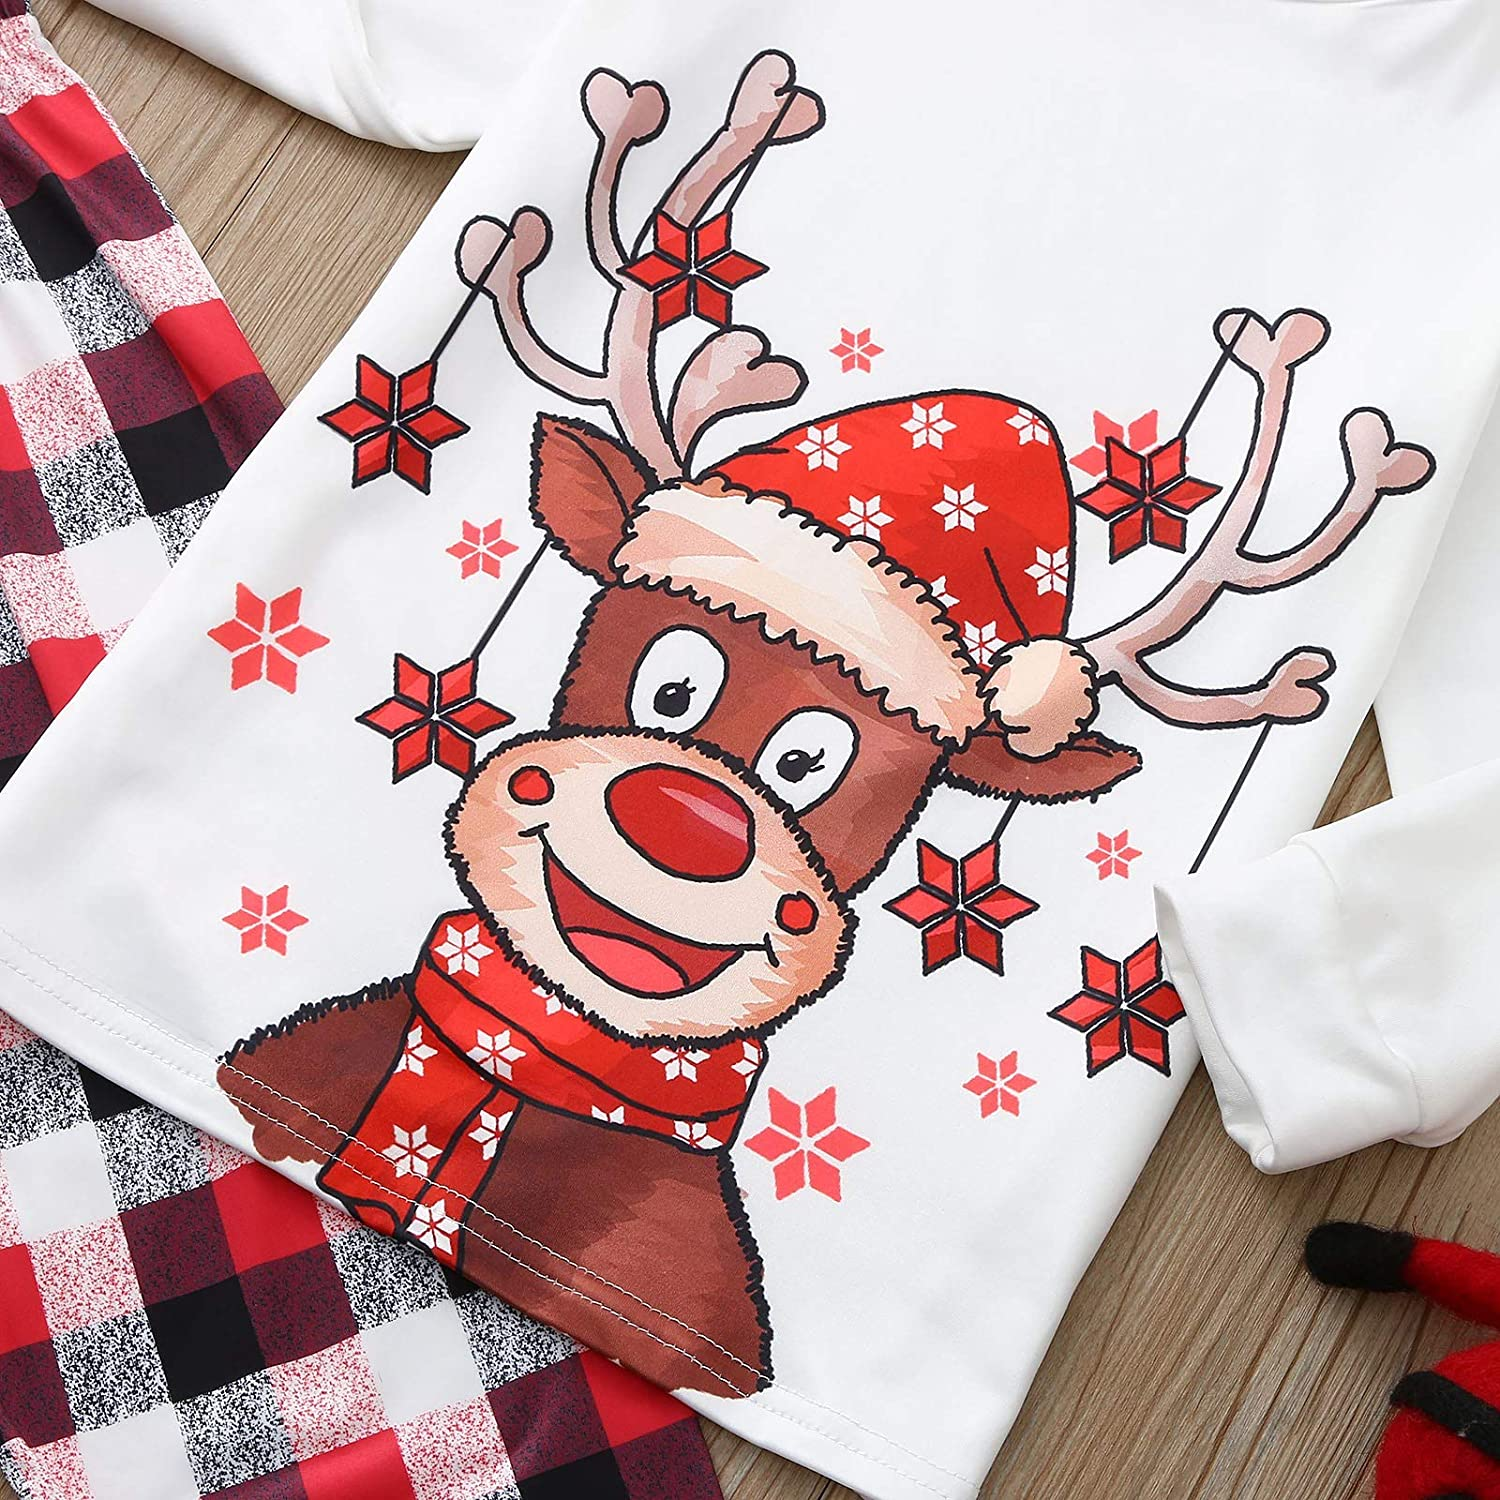 AODONG Christmas Loungewear for Family Matching Christmas Pajamas Set Family Women Men Kids Baby Lace Knit Nightwear Lingerie Gown Sleep Cami PJS Set with